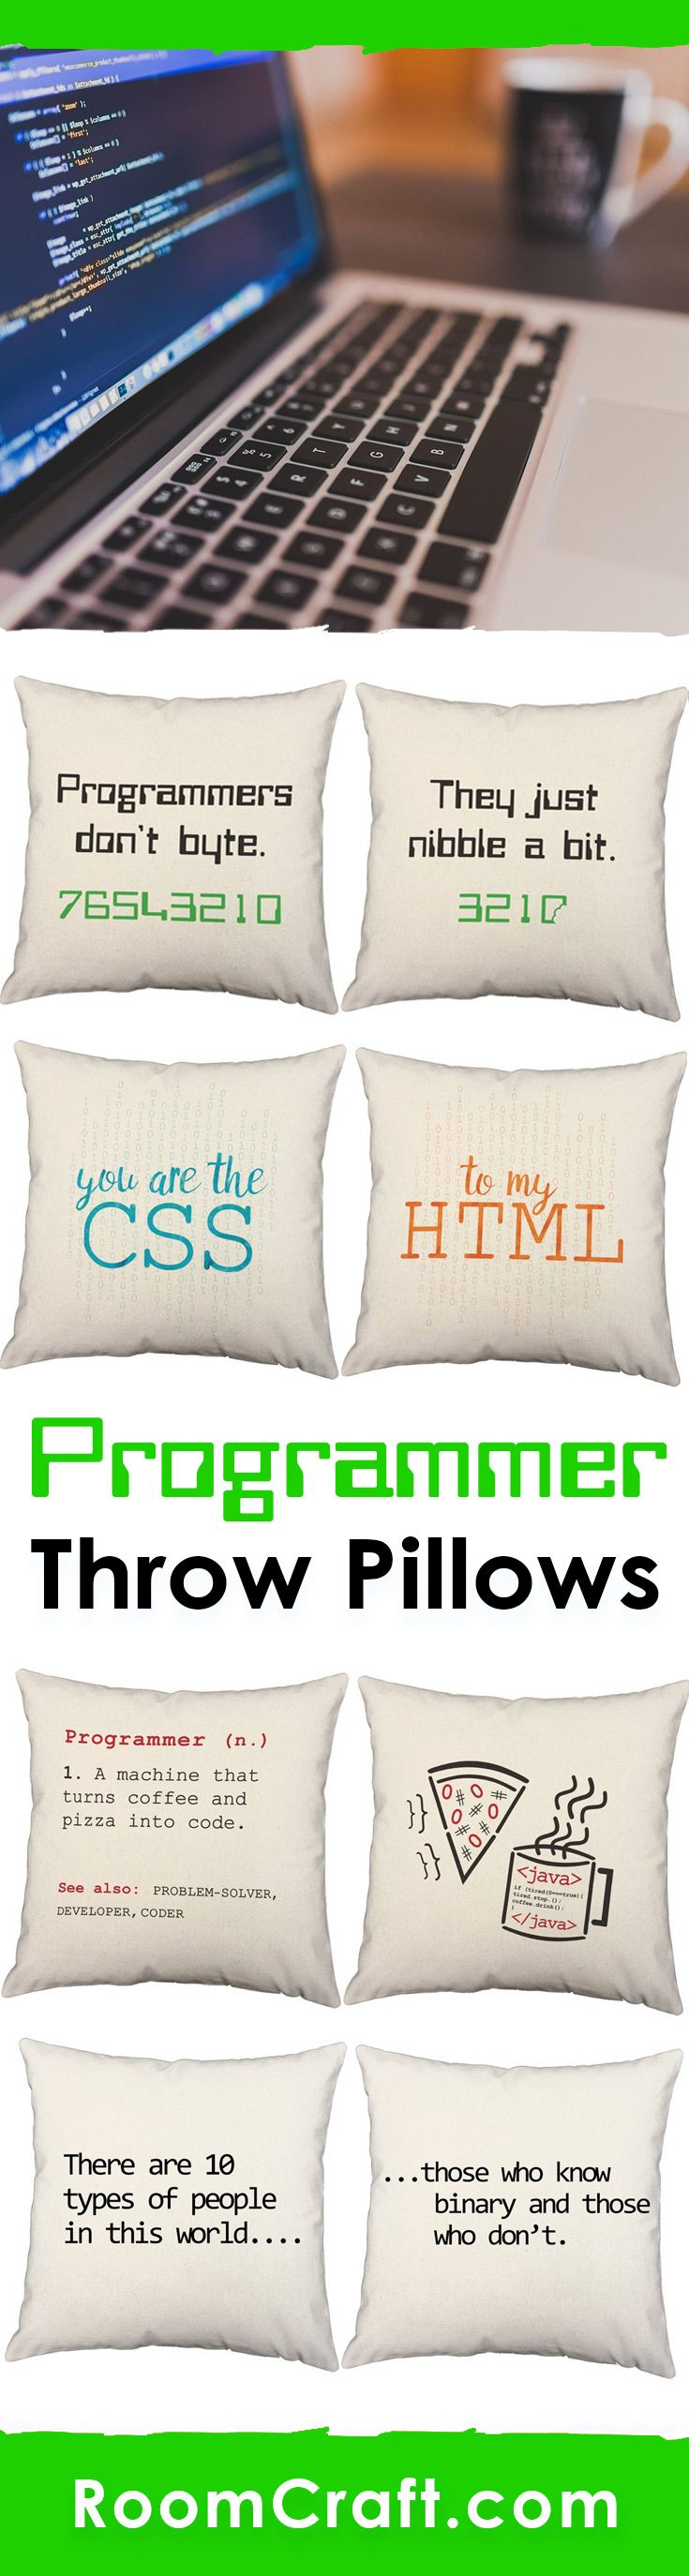 Computer programmers unite! If you love coding, these techie throw pillows will be the perfect addition to your home. Each witty design is offered in multiple fabrics, colors, and sizes making them the perfect addition to any office or game room. Our quality computer programming pillow covers are made to order in the USA and feature 3 wooden buttons on the back for closure. Choose your favorite and create a truly unique pillow set. #roomcraft